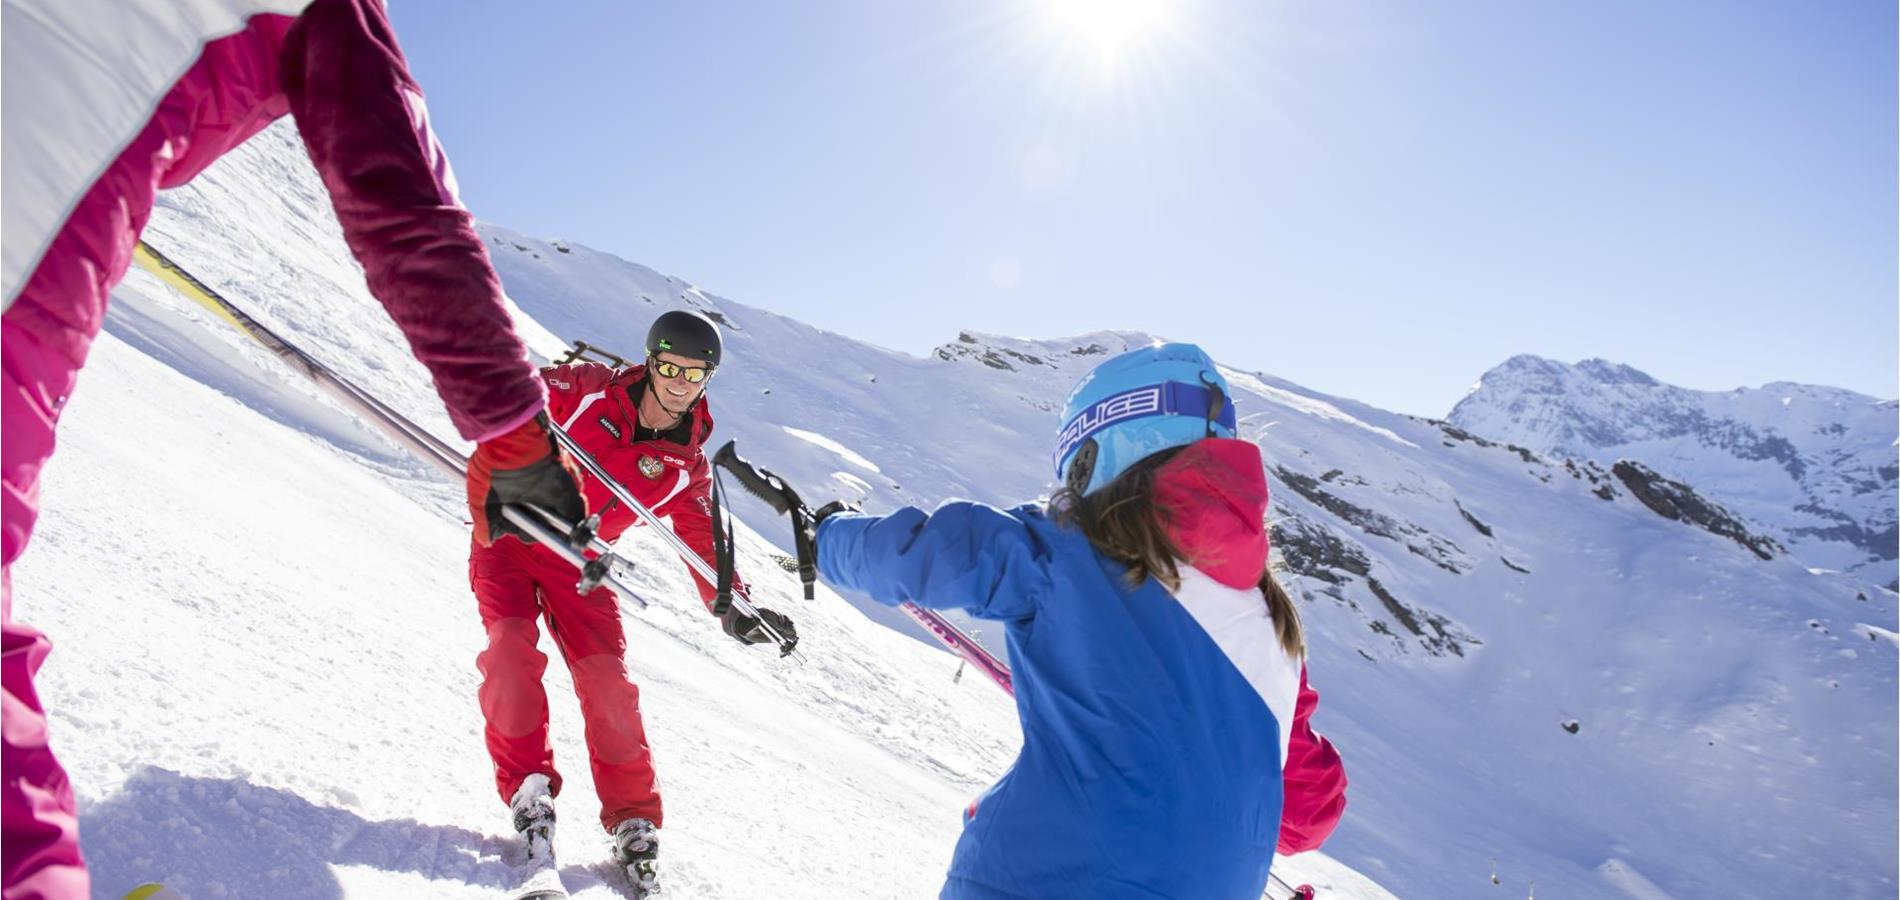 Ski Schools in the Passeiertal Valley